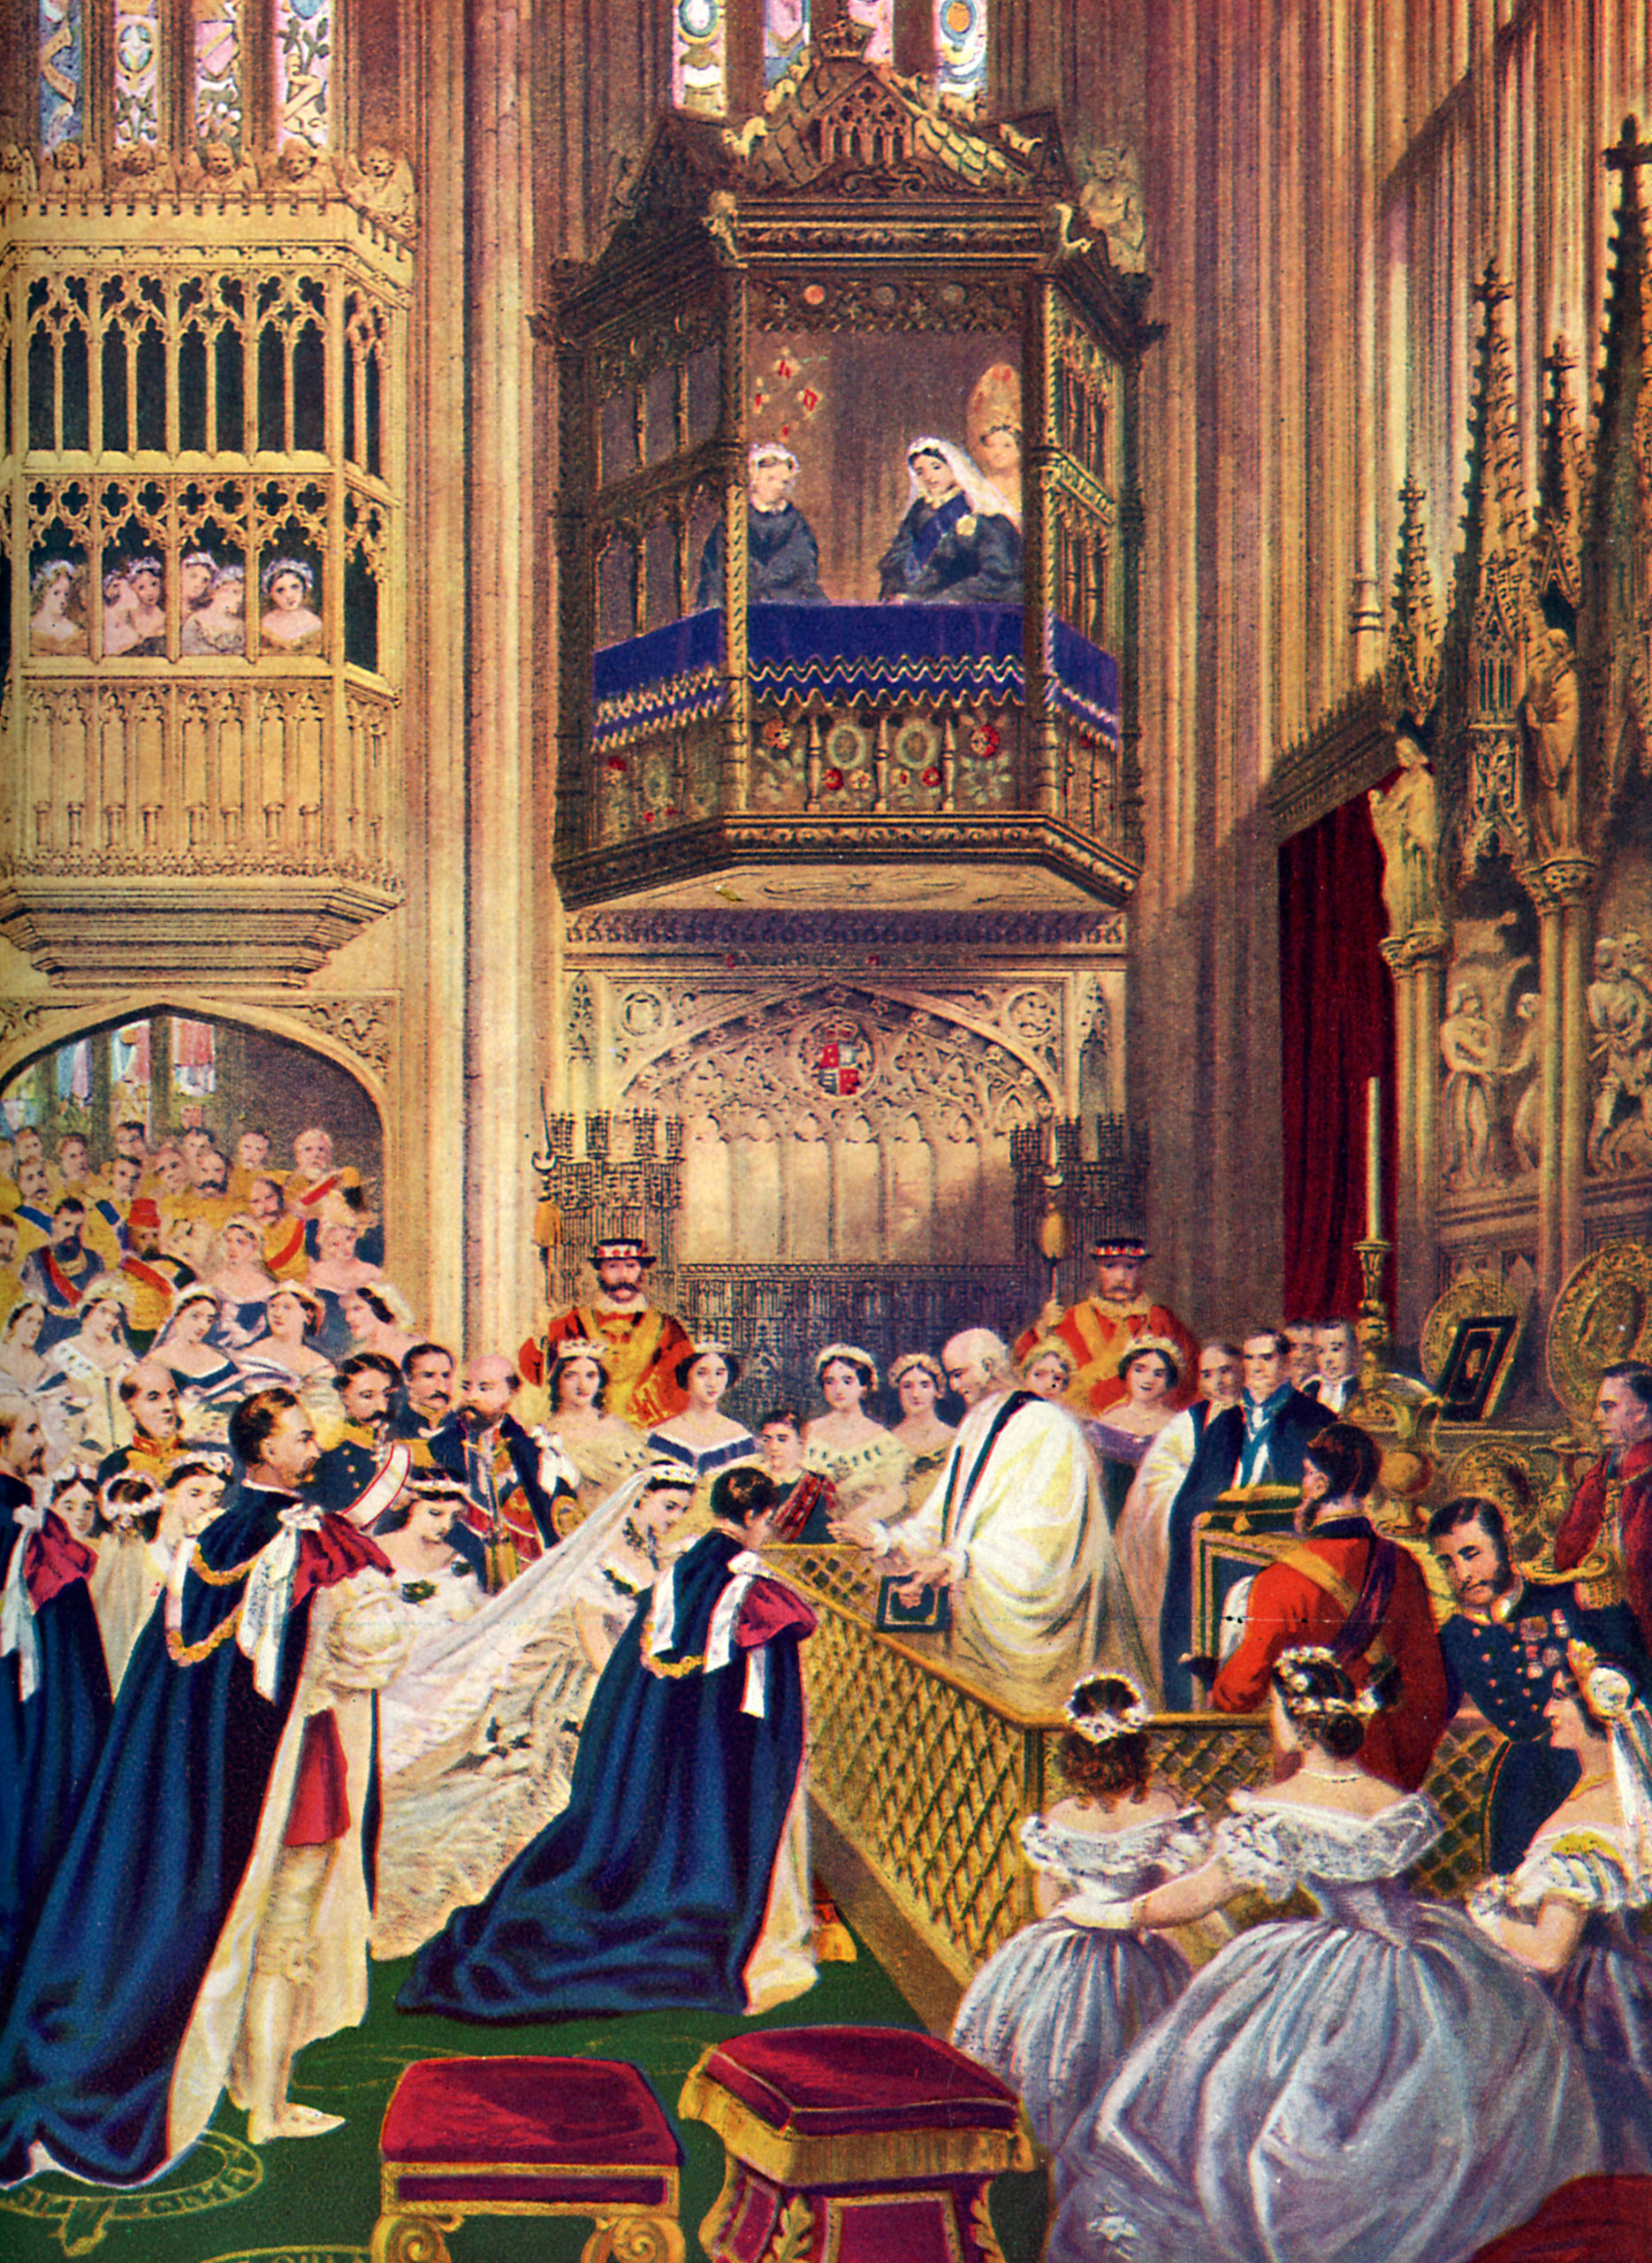 The Prince of Wales marriage to Alexandra of Denmark at St. George 's Chapel, Windsor on March 10, 1863.